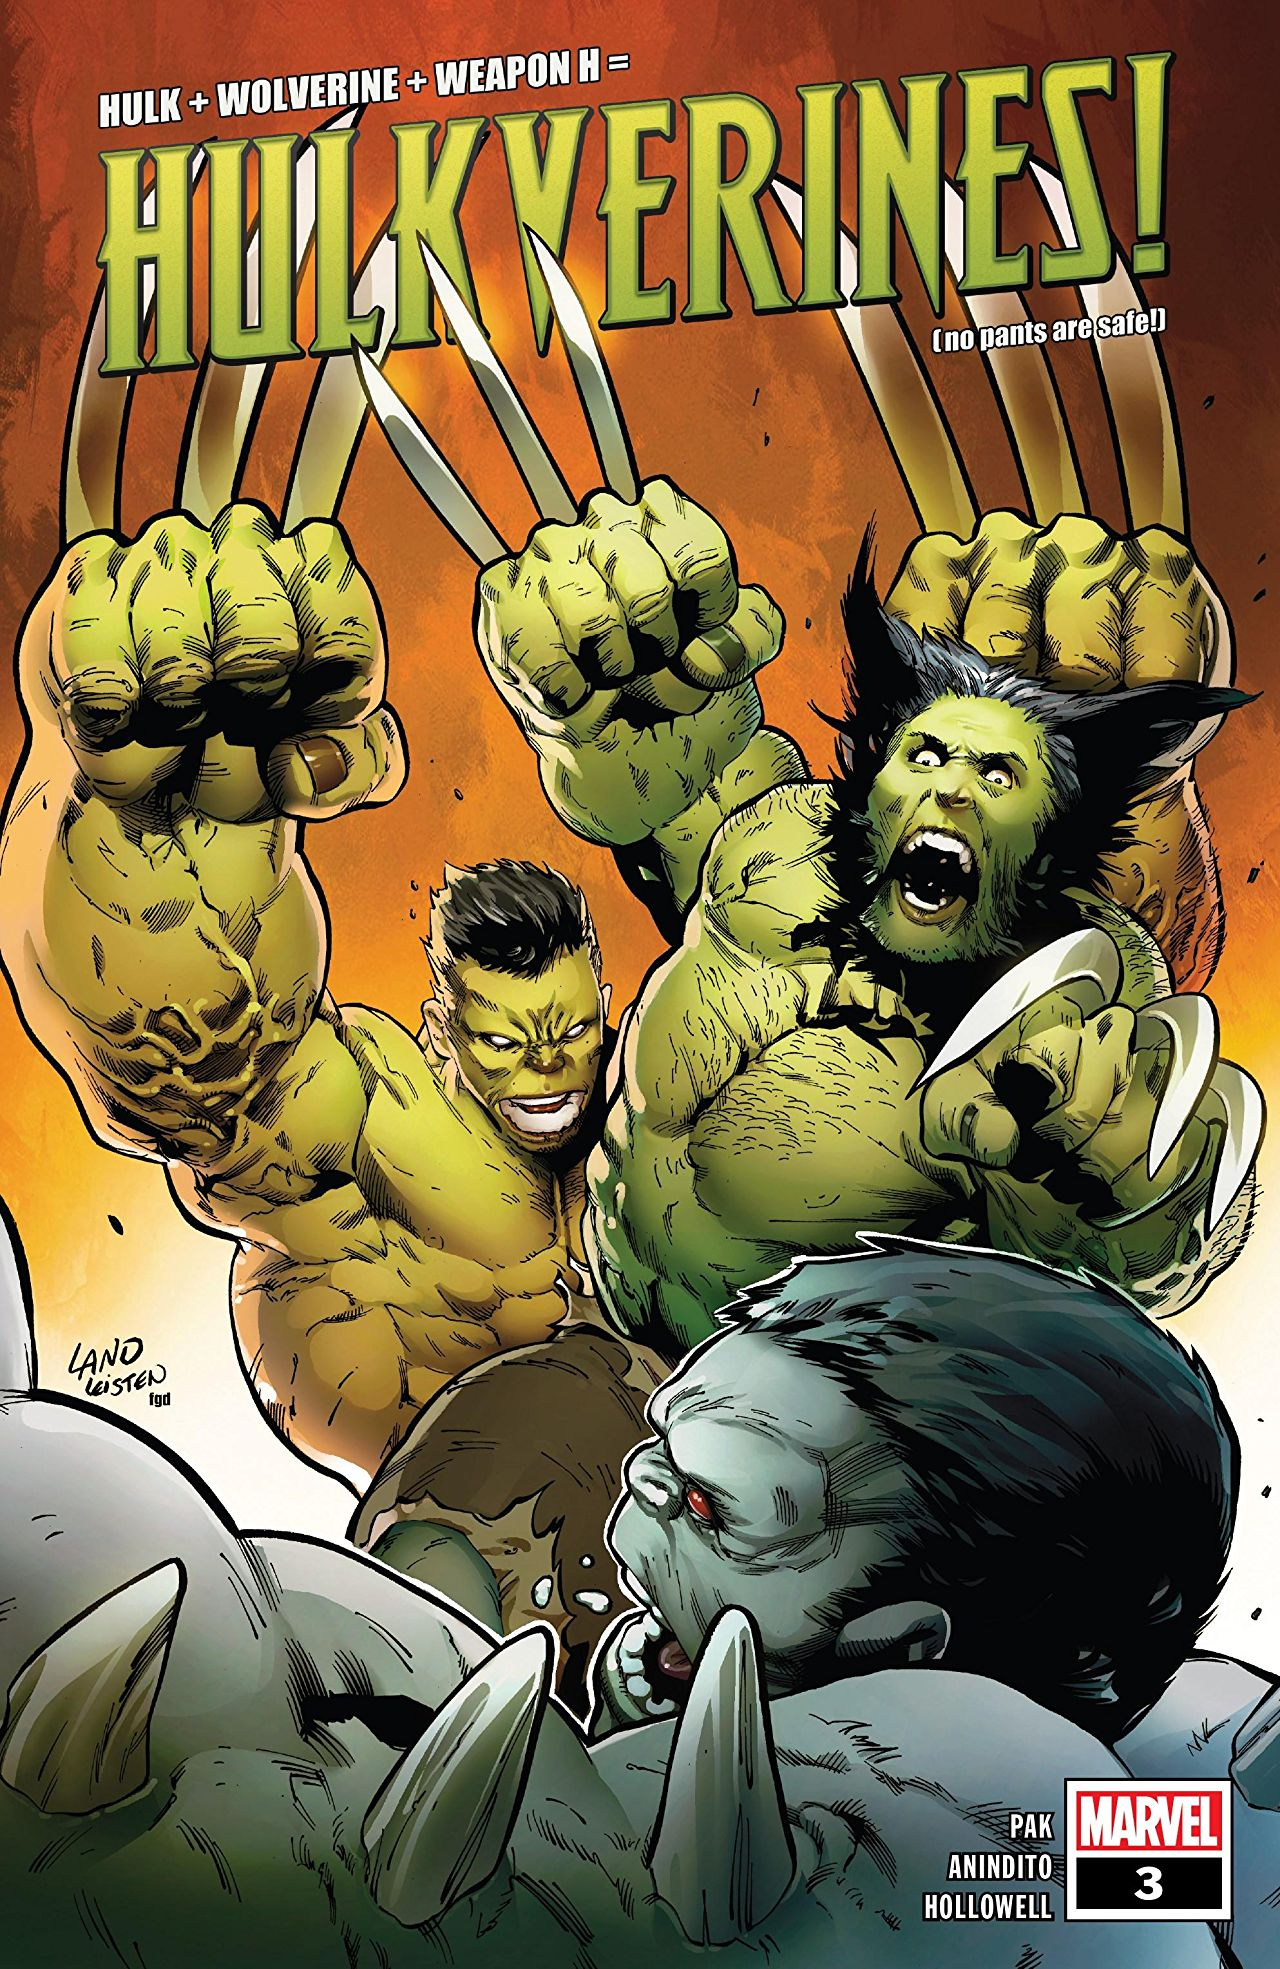 Marvel Preview: Hulkverines #3